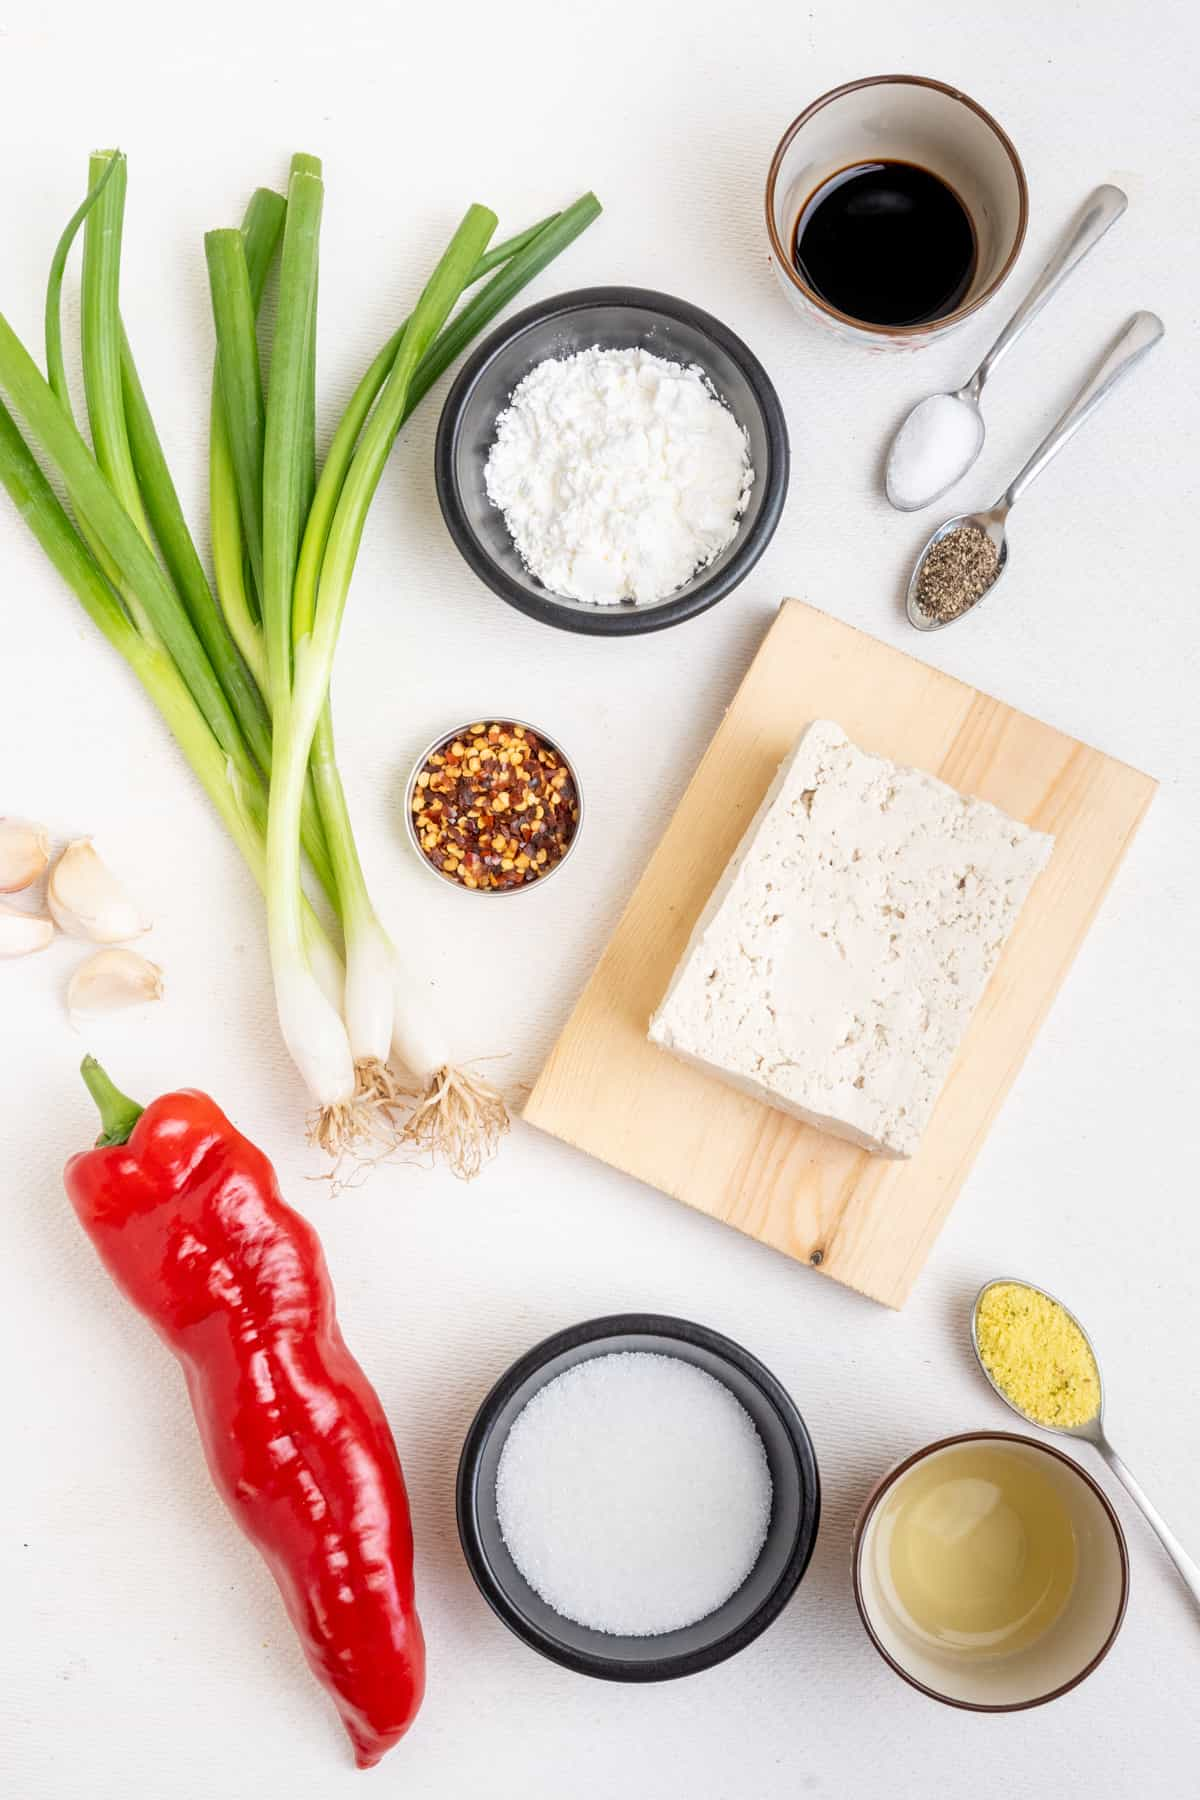 The ingredients used in this recipe for tofu in a sweet chili sauce, laid out on a white surface.